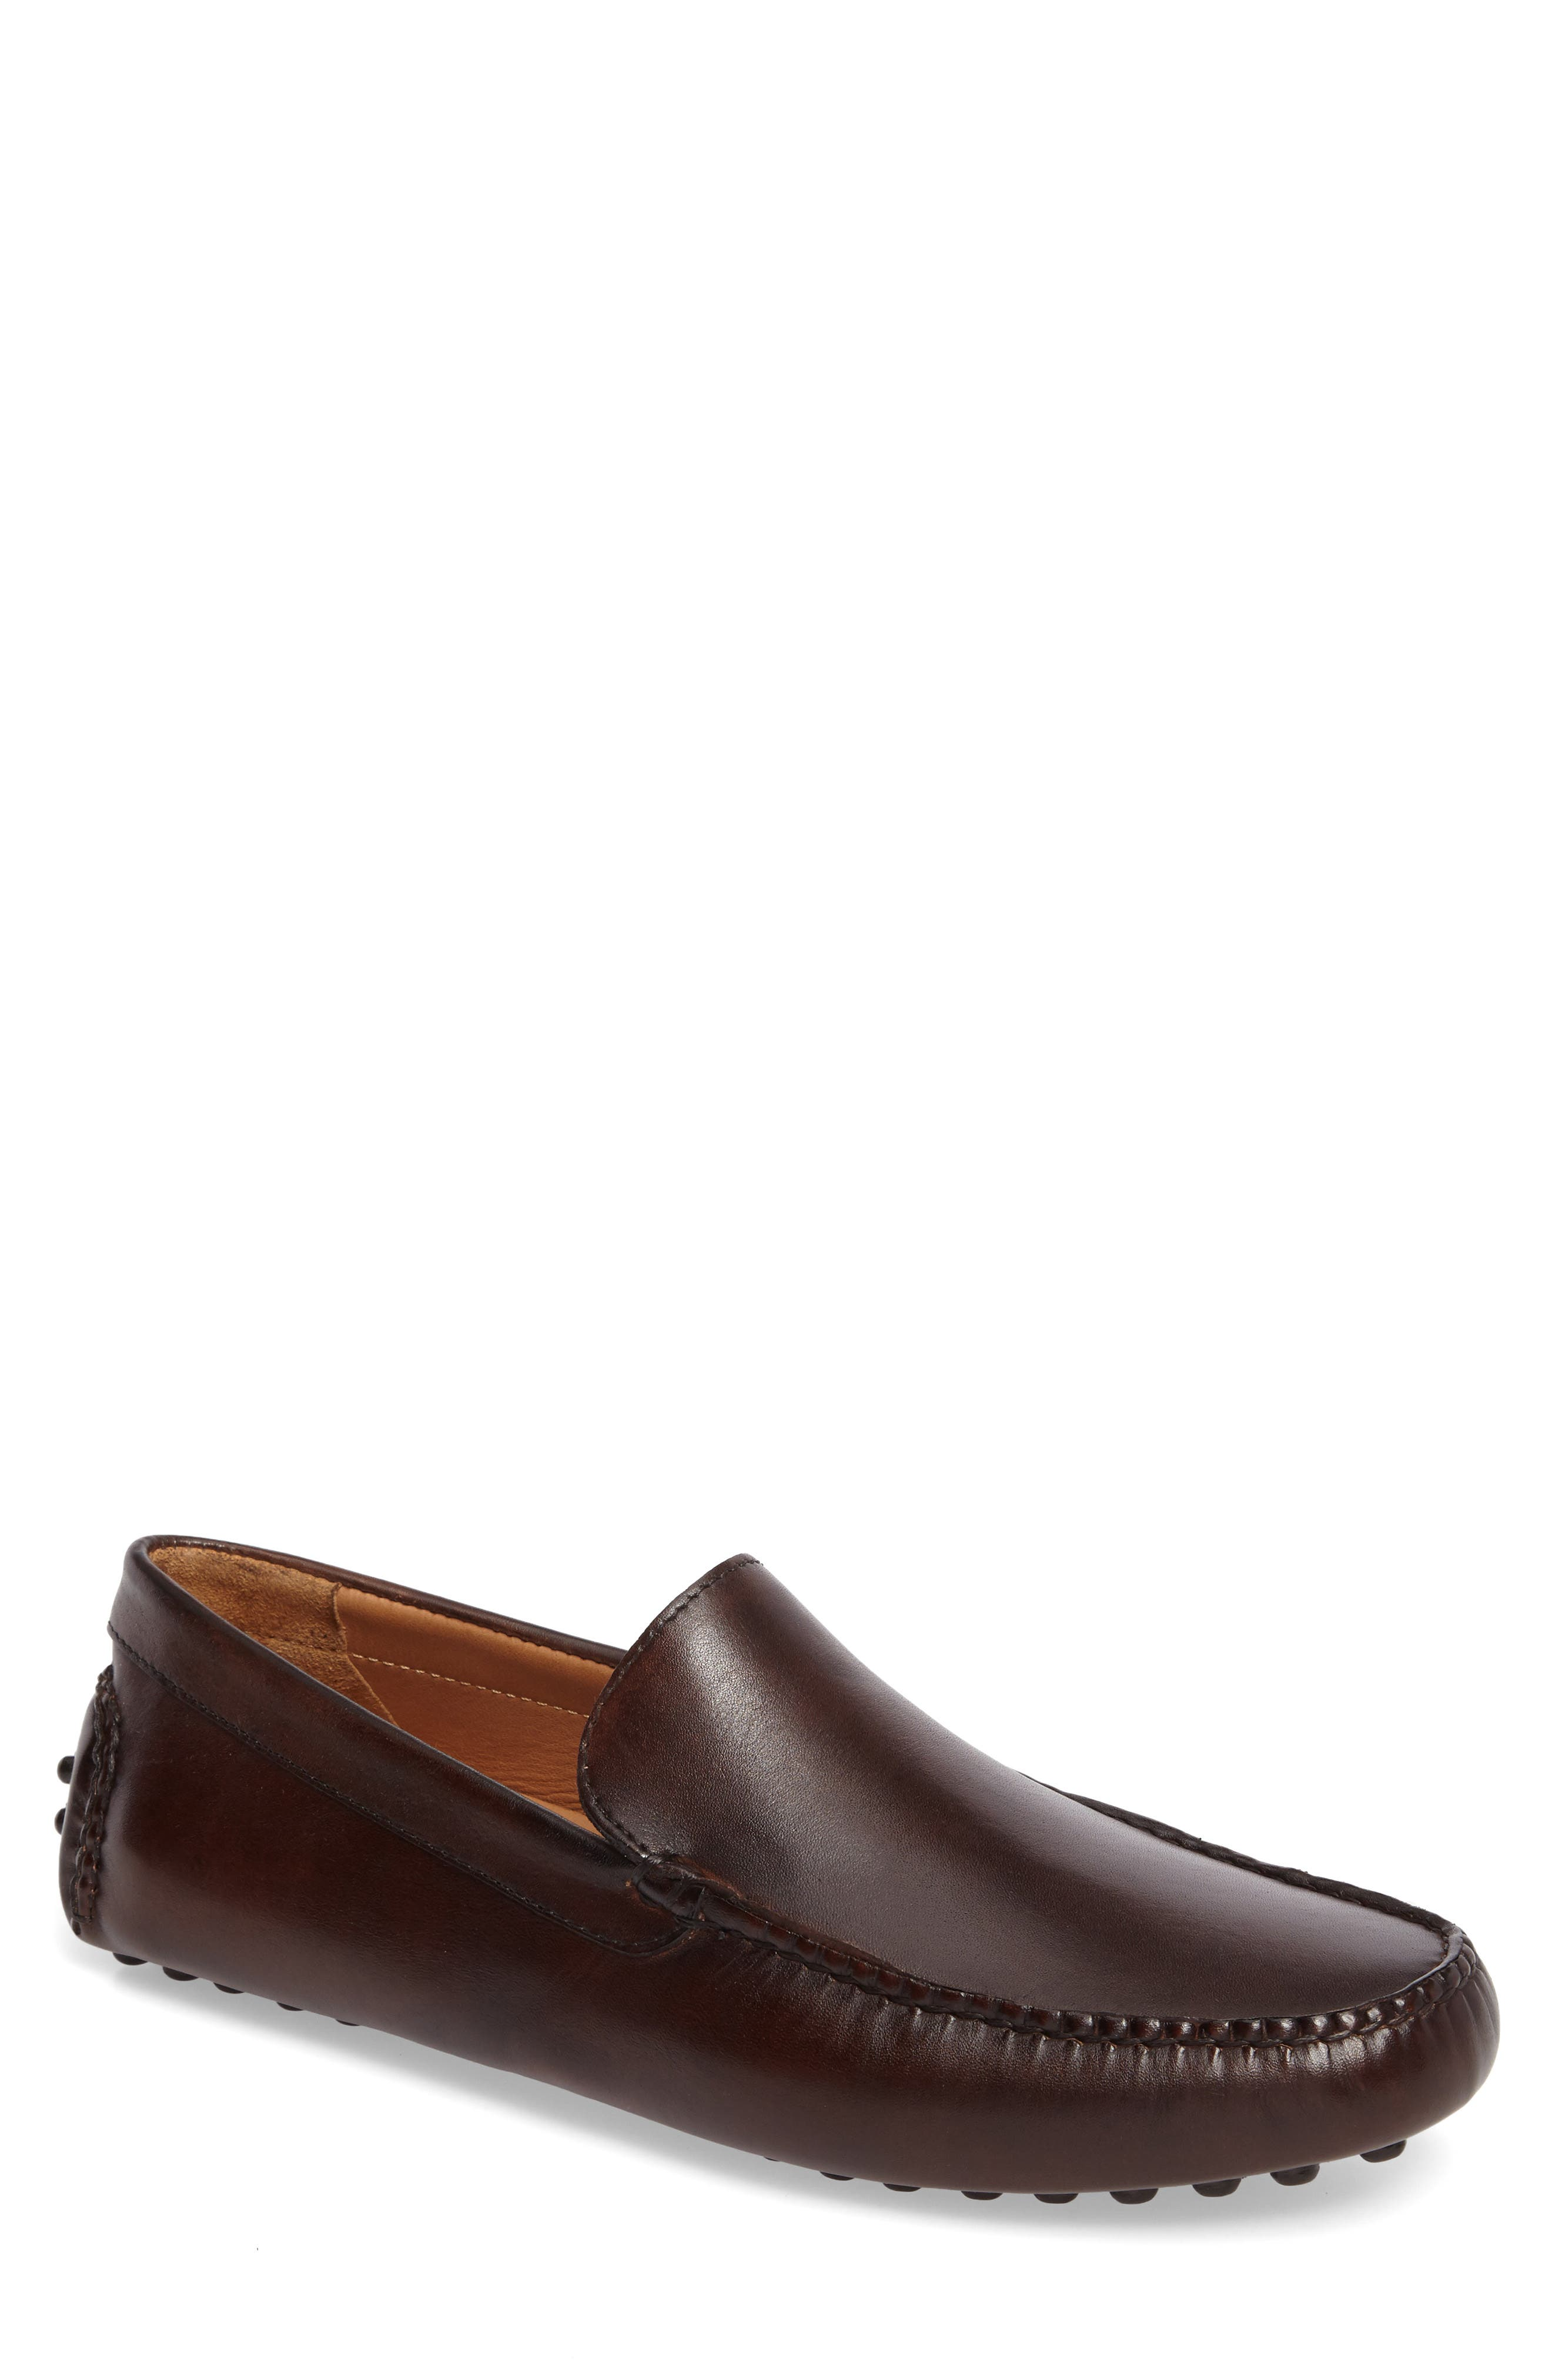 Cane Driving Shoe,                             Main thumbnail 1, color,                             Brown Leather